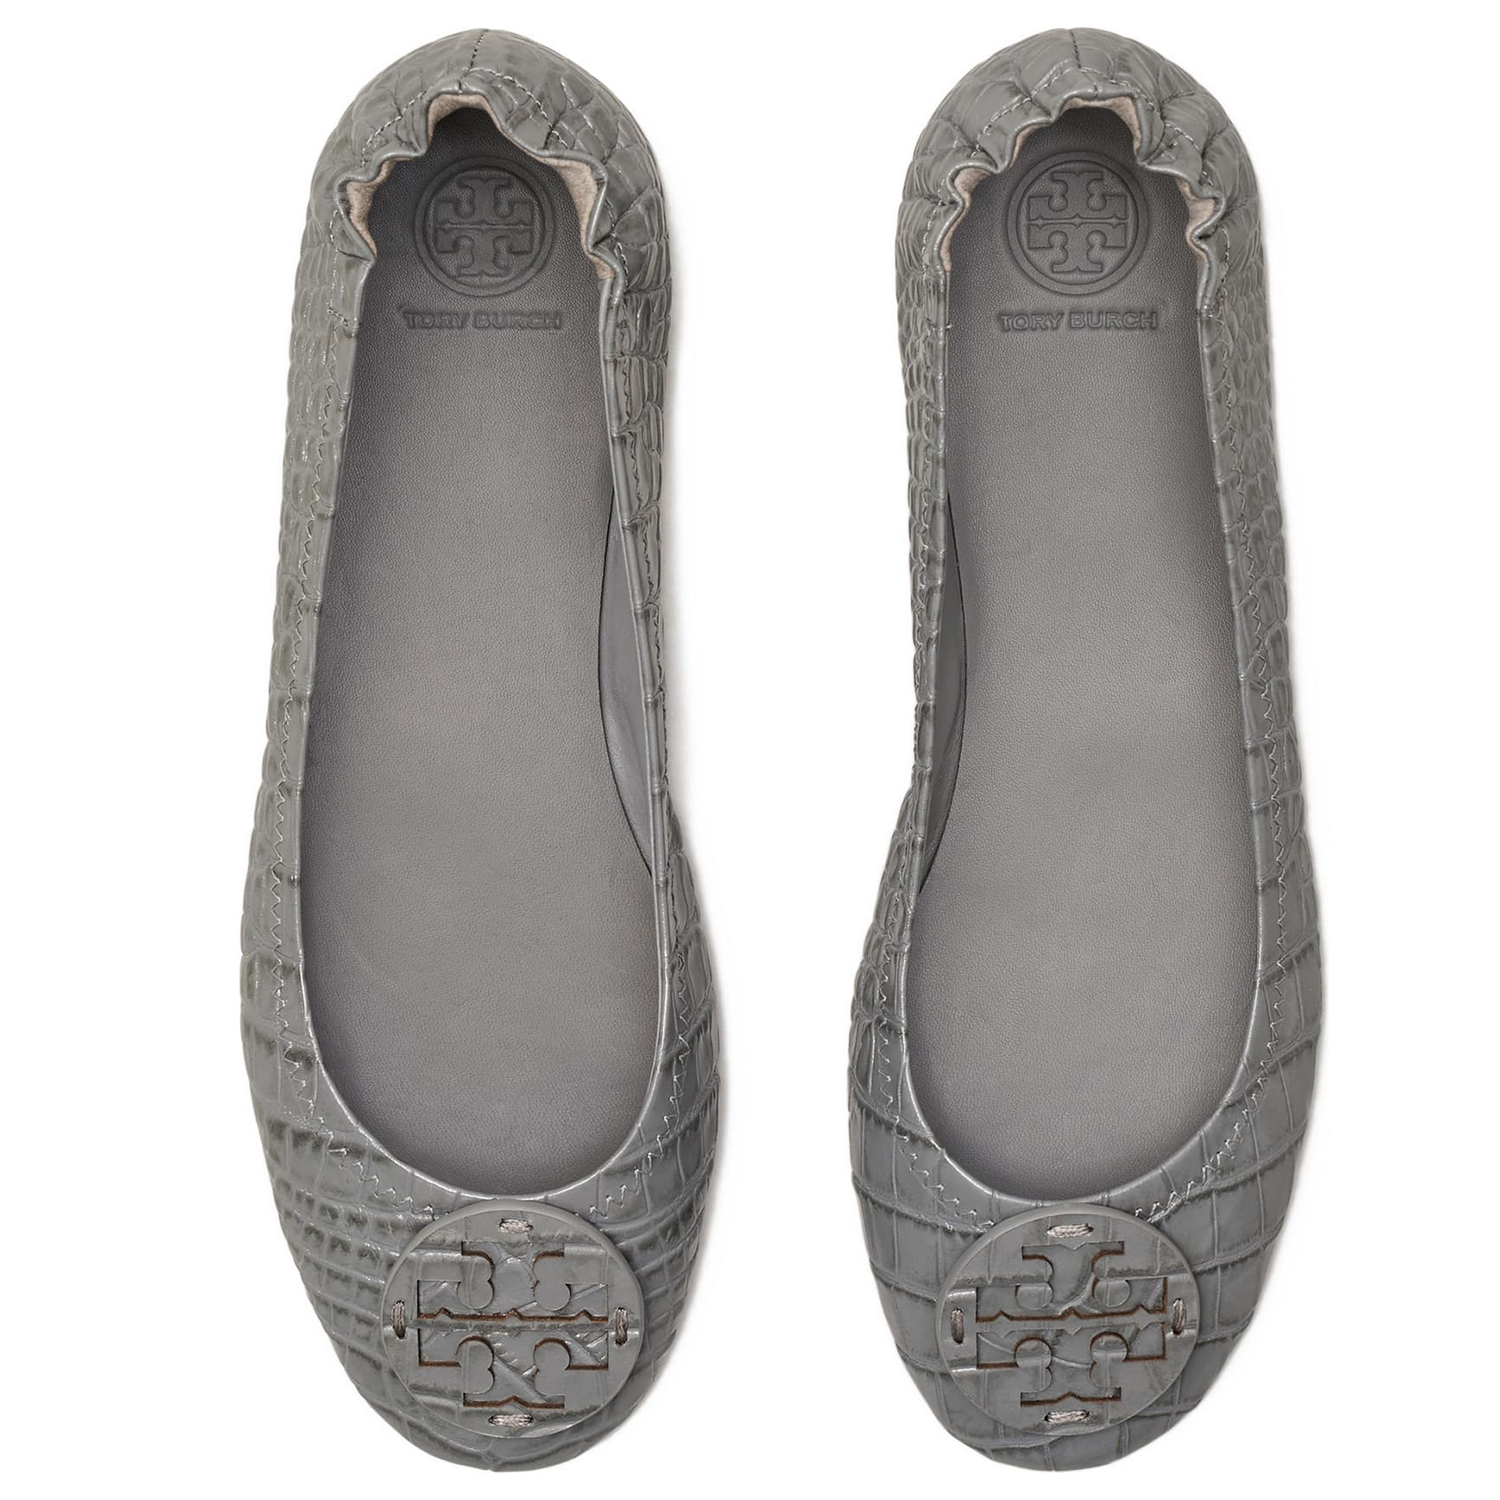 Minnie Travel Ballet Flat TORY BURCH